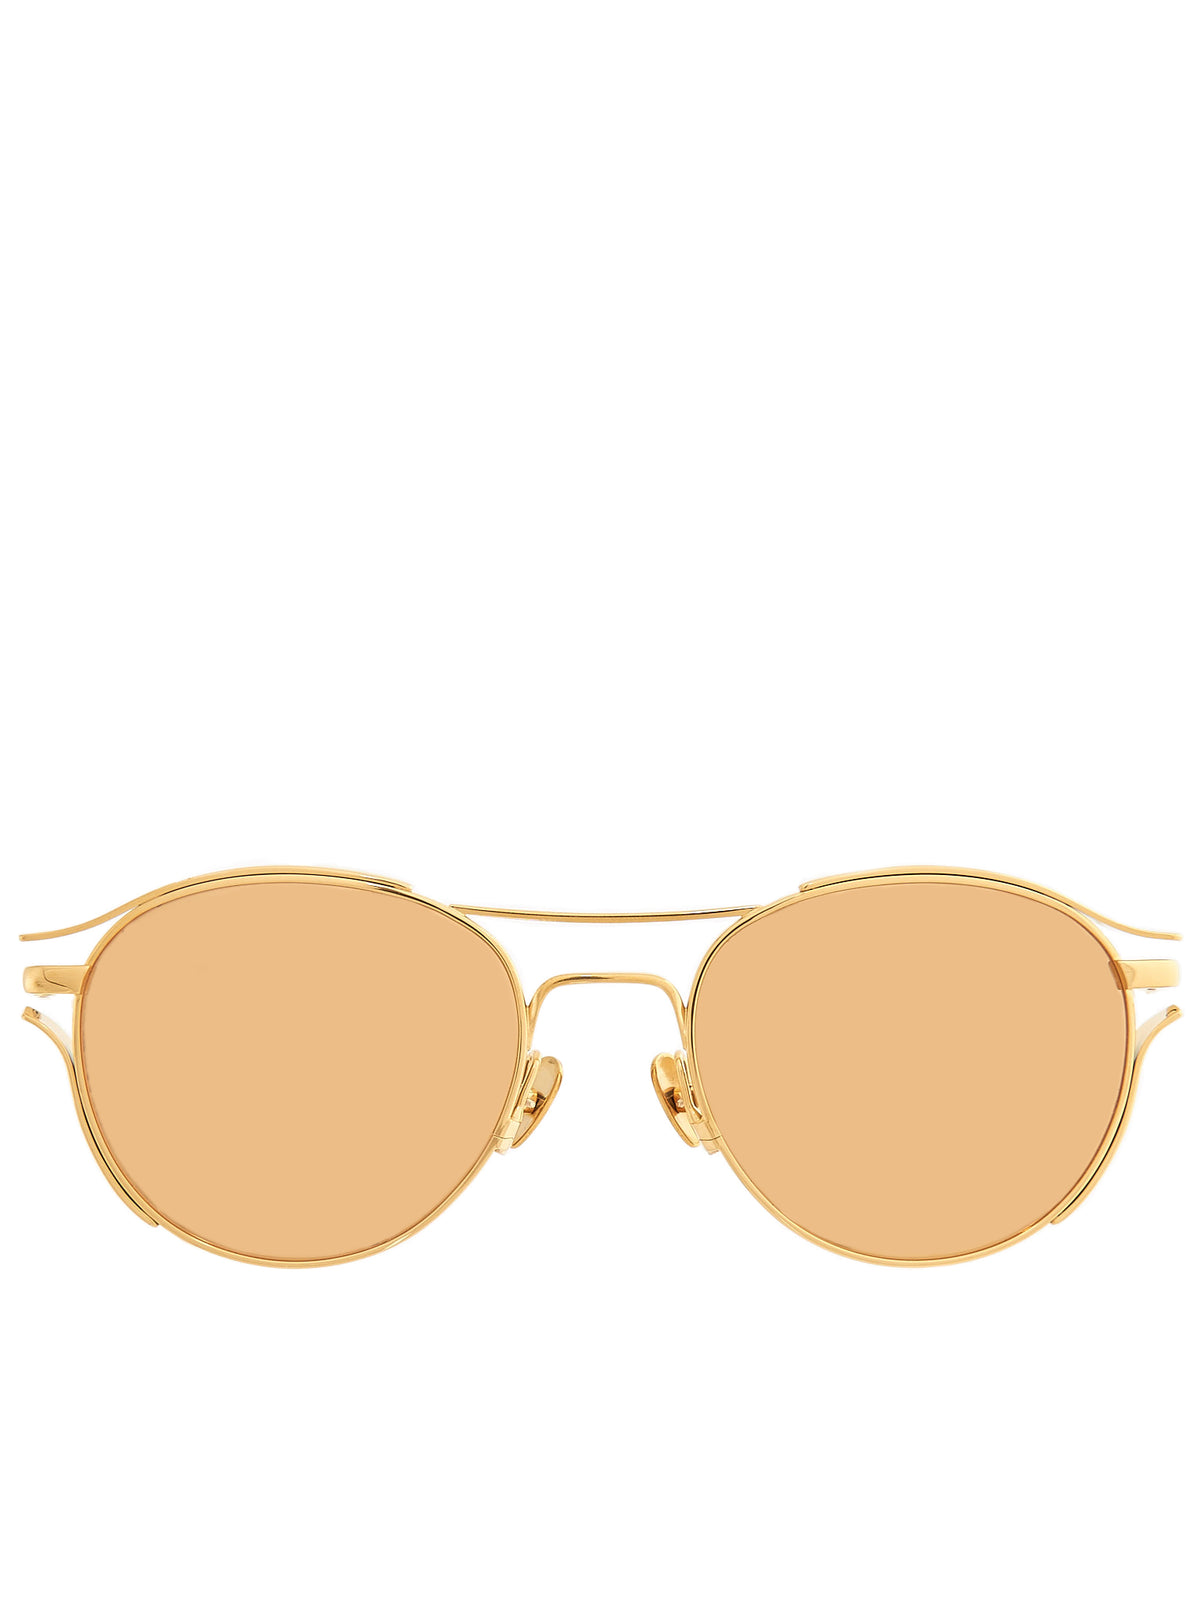 Oval Aviator Sunglasses (LFL944C1SUN-YELLOW-GOLD)